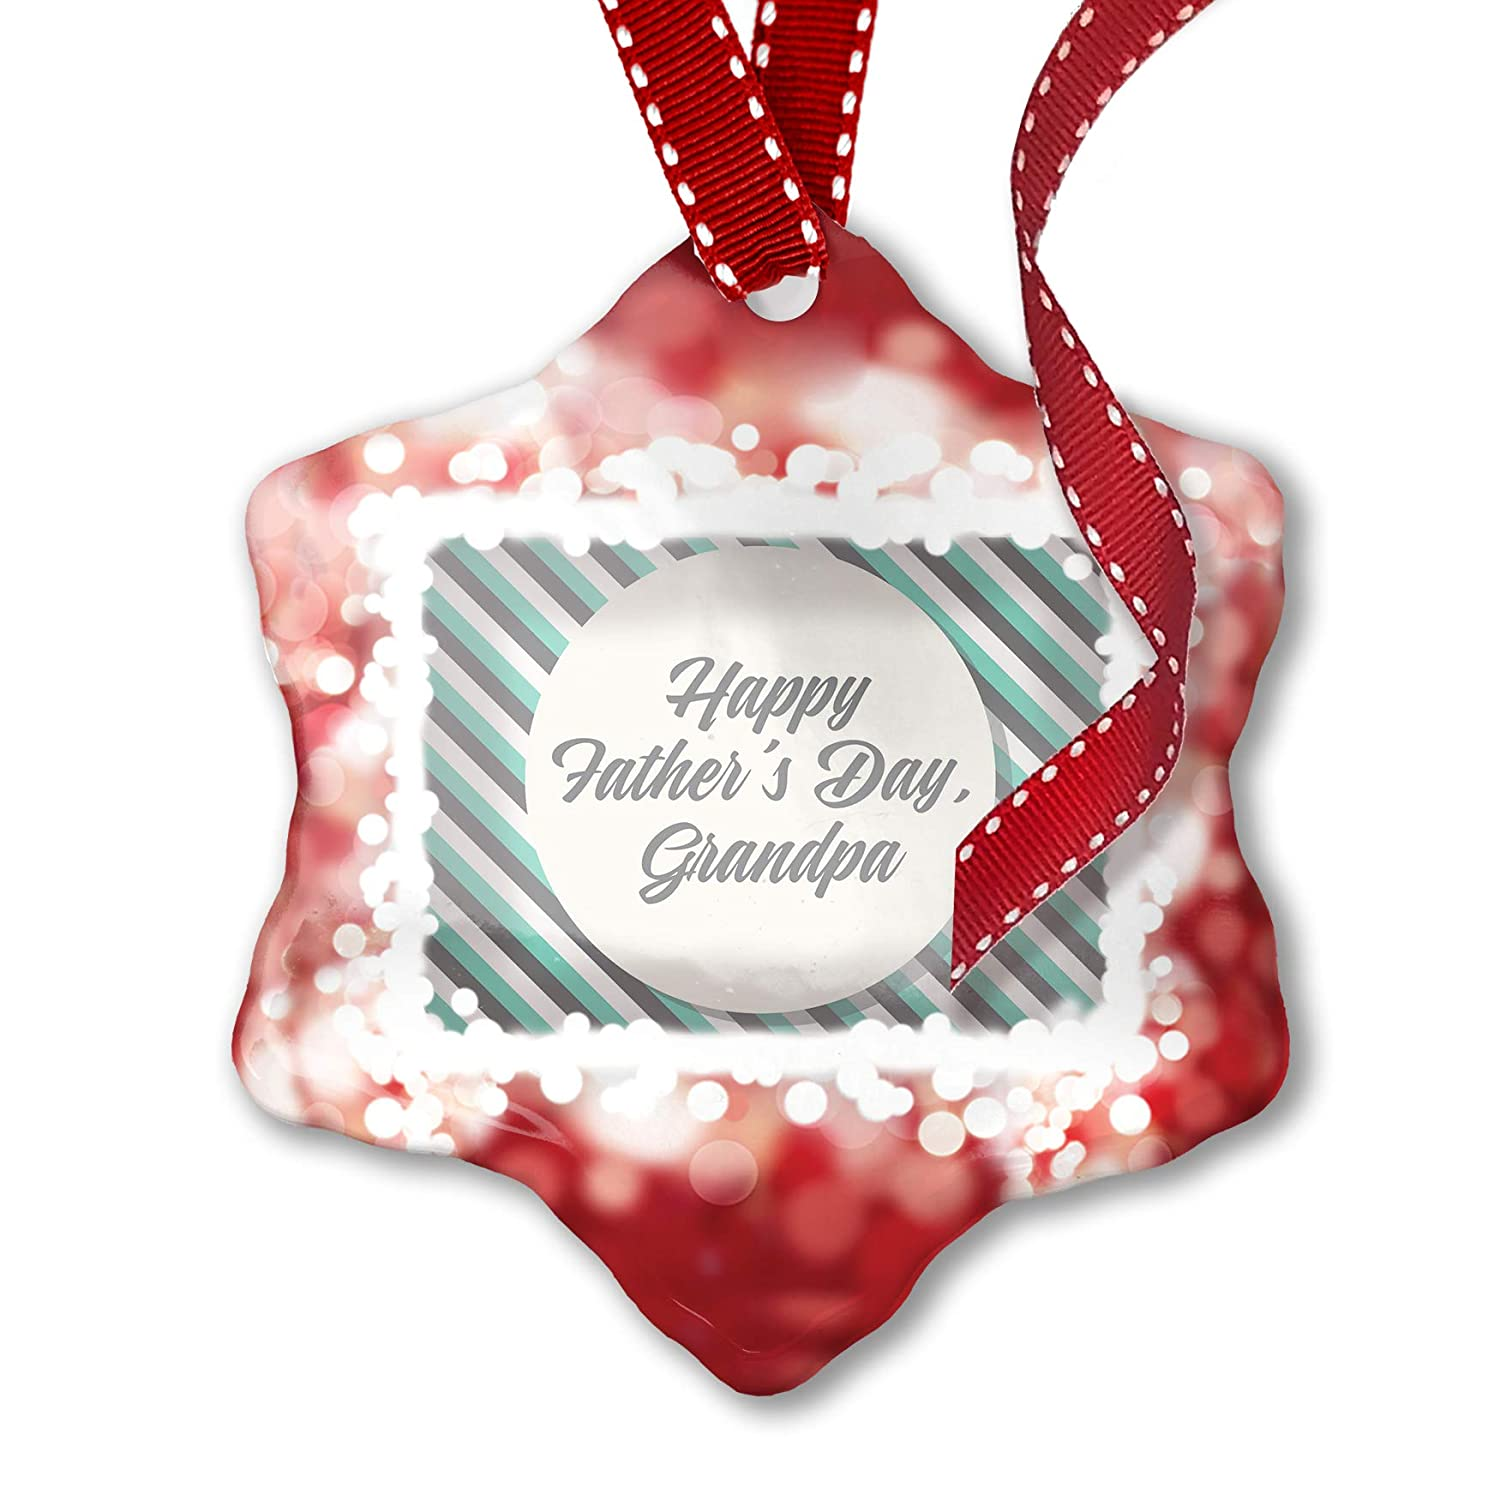 Amazon com: NEONBLOND Christmas Ornament Happy Father's Day